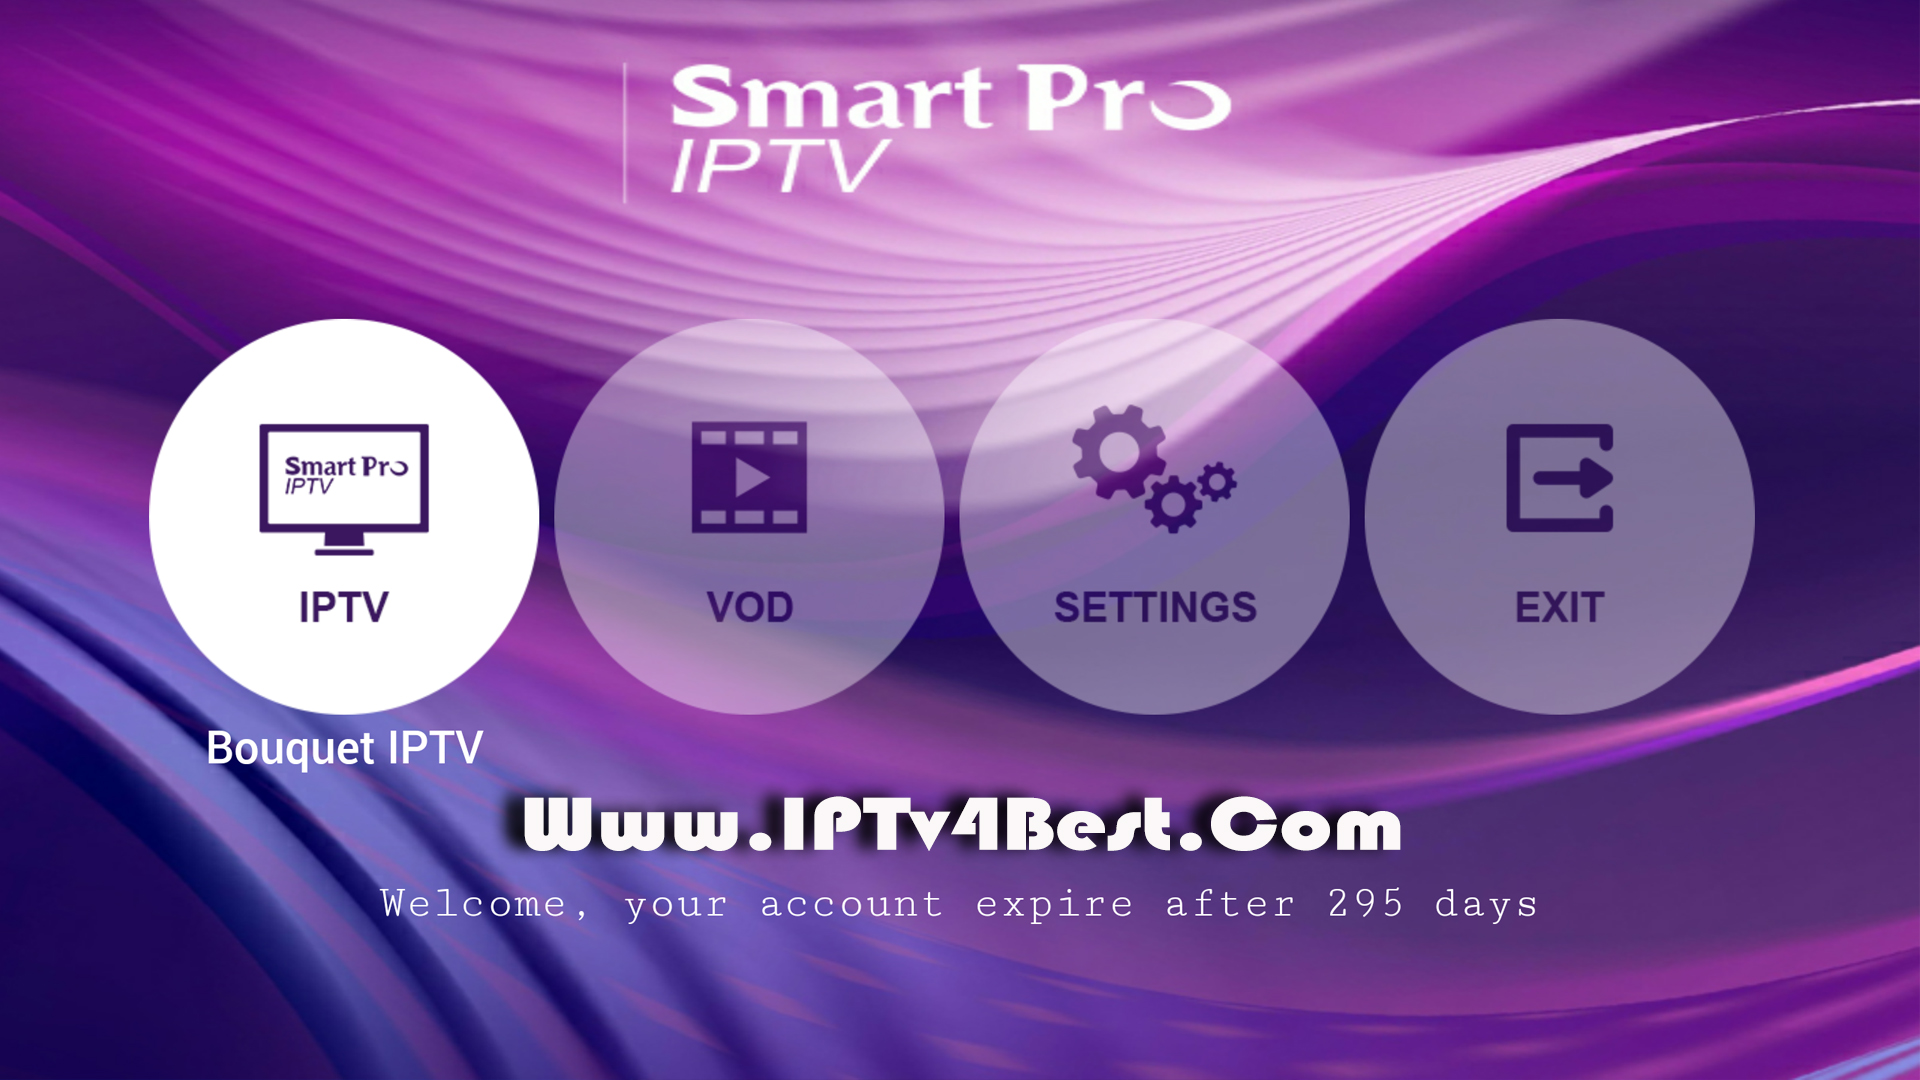 SmartPro Tv APK ‏+ Activation Code 1 Year Free By IPTV4BEST.COM